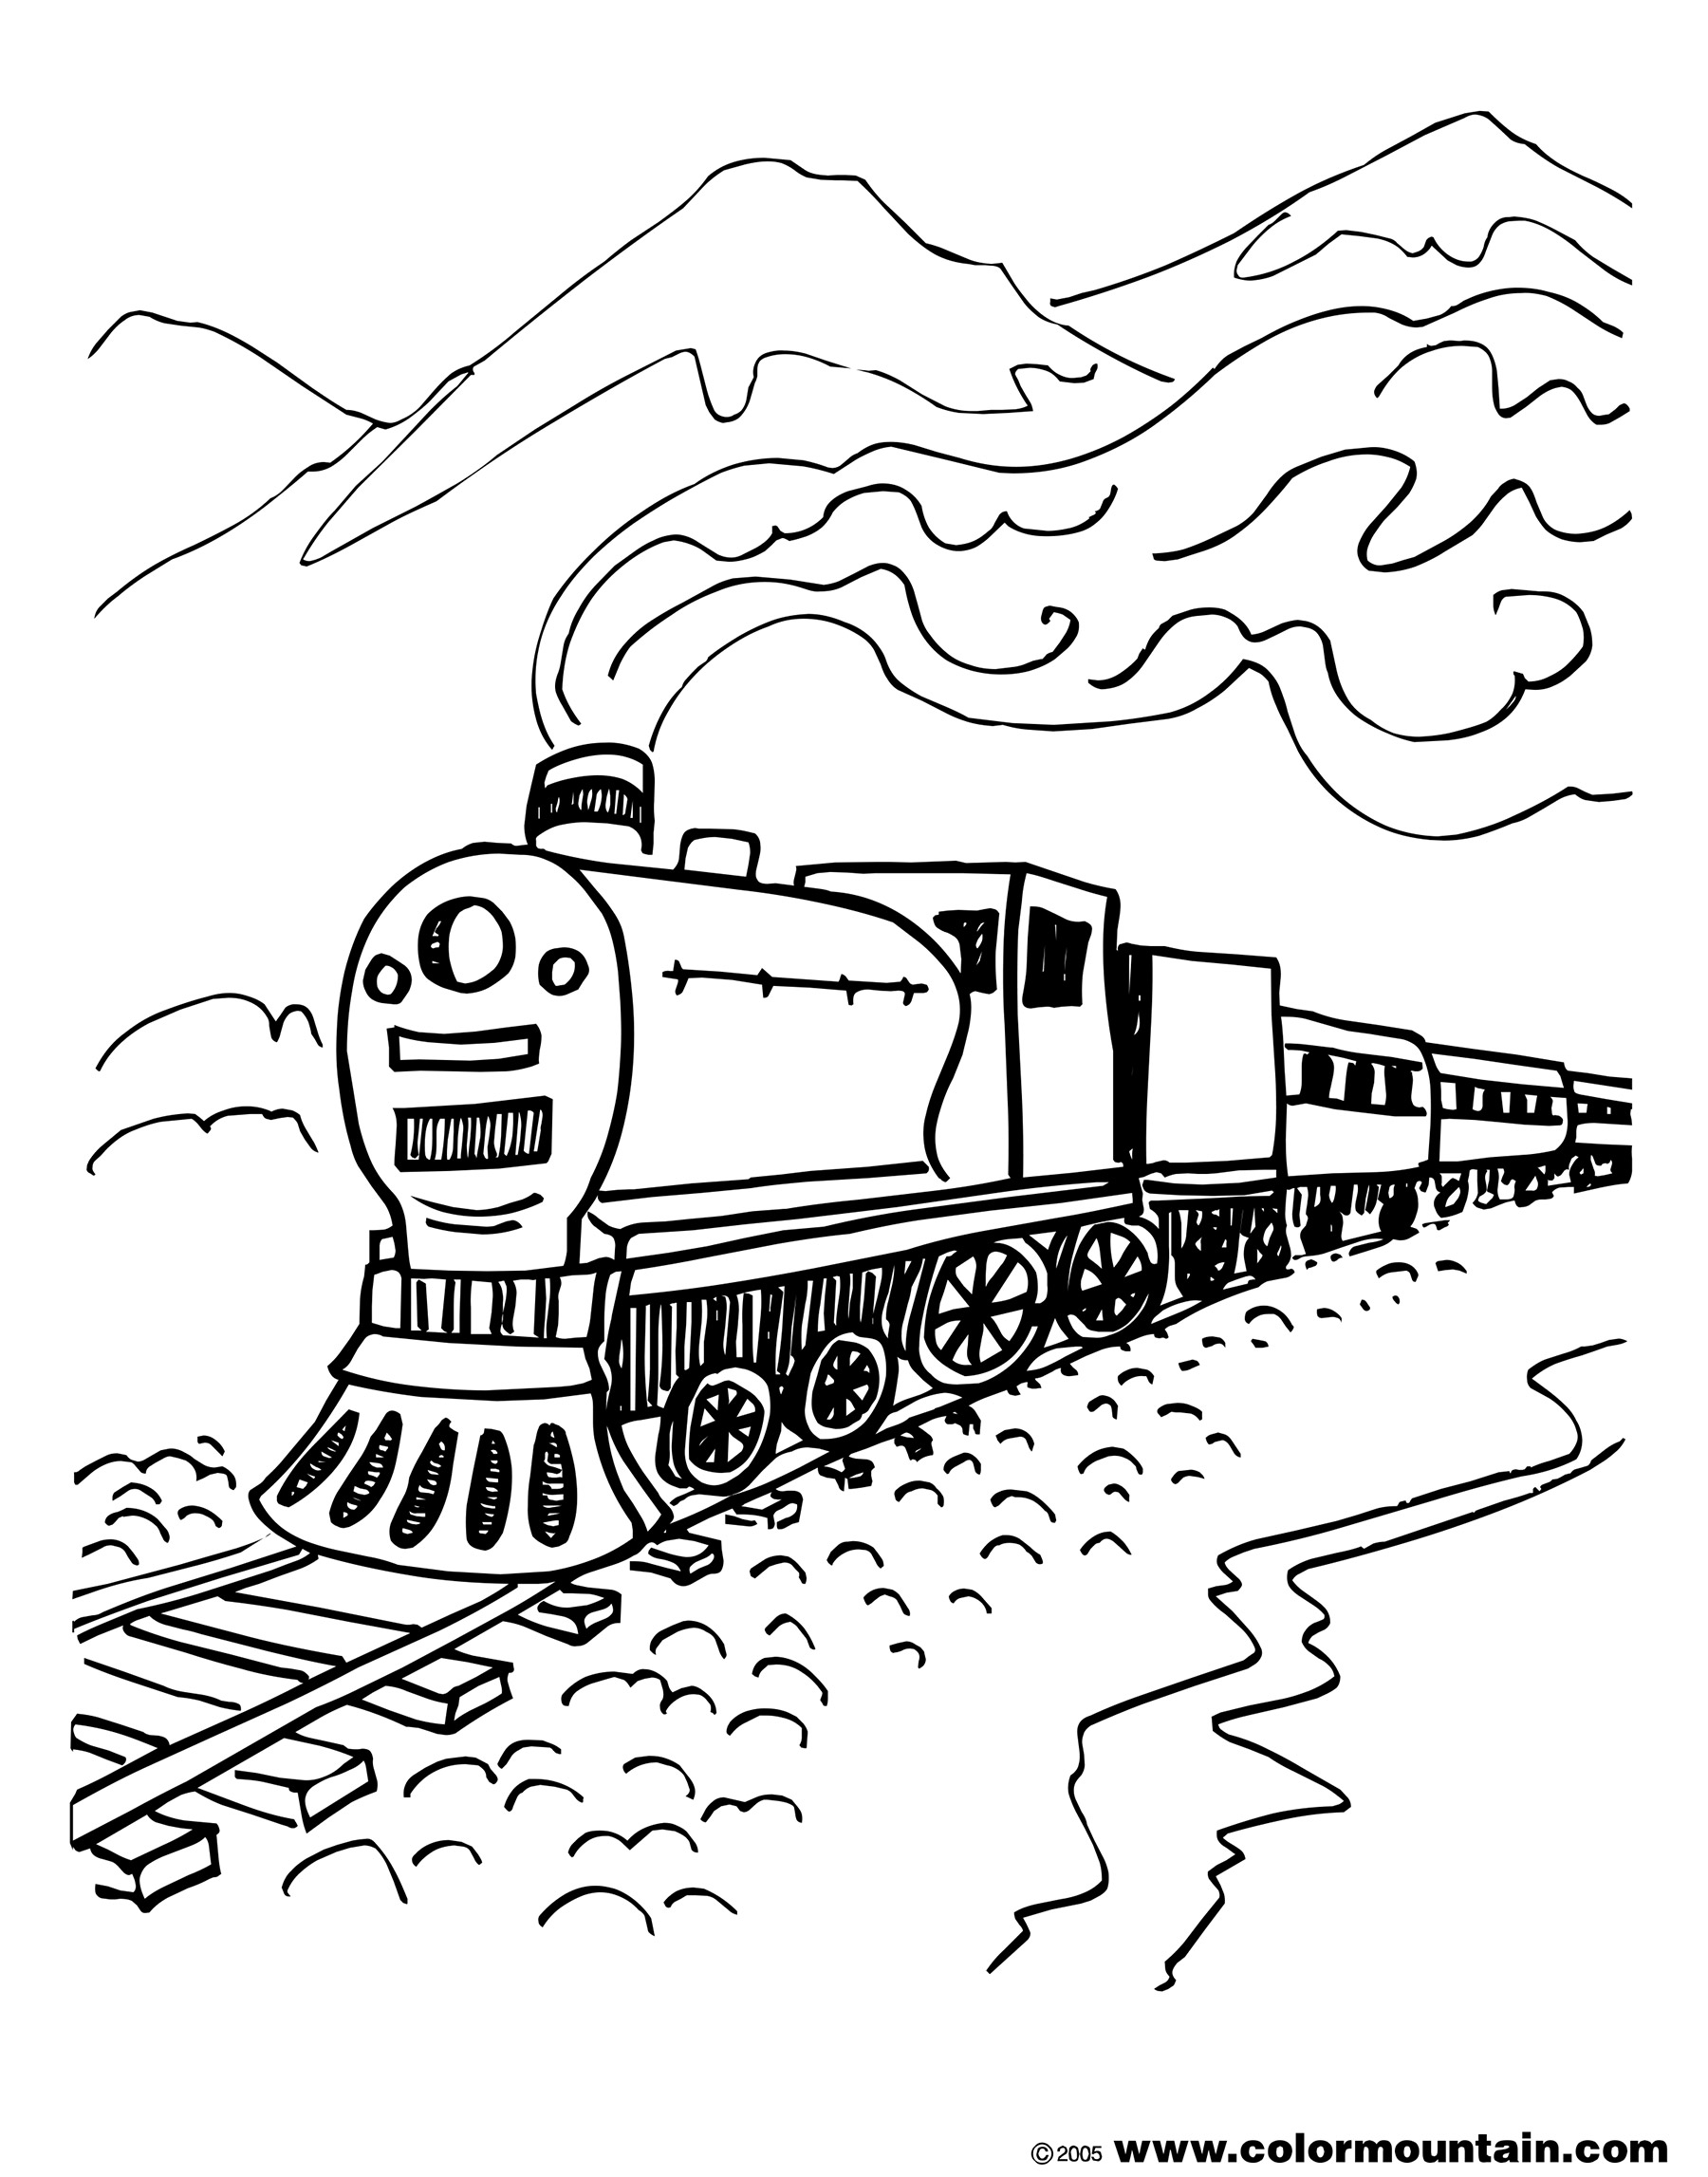 train engine coloring page 4 4 0 steam locomotive coloring pages coloring pages coloring train page engine